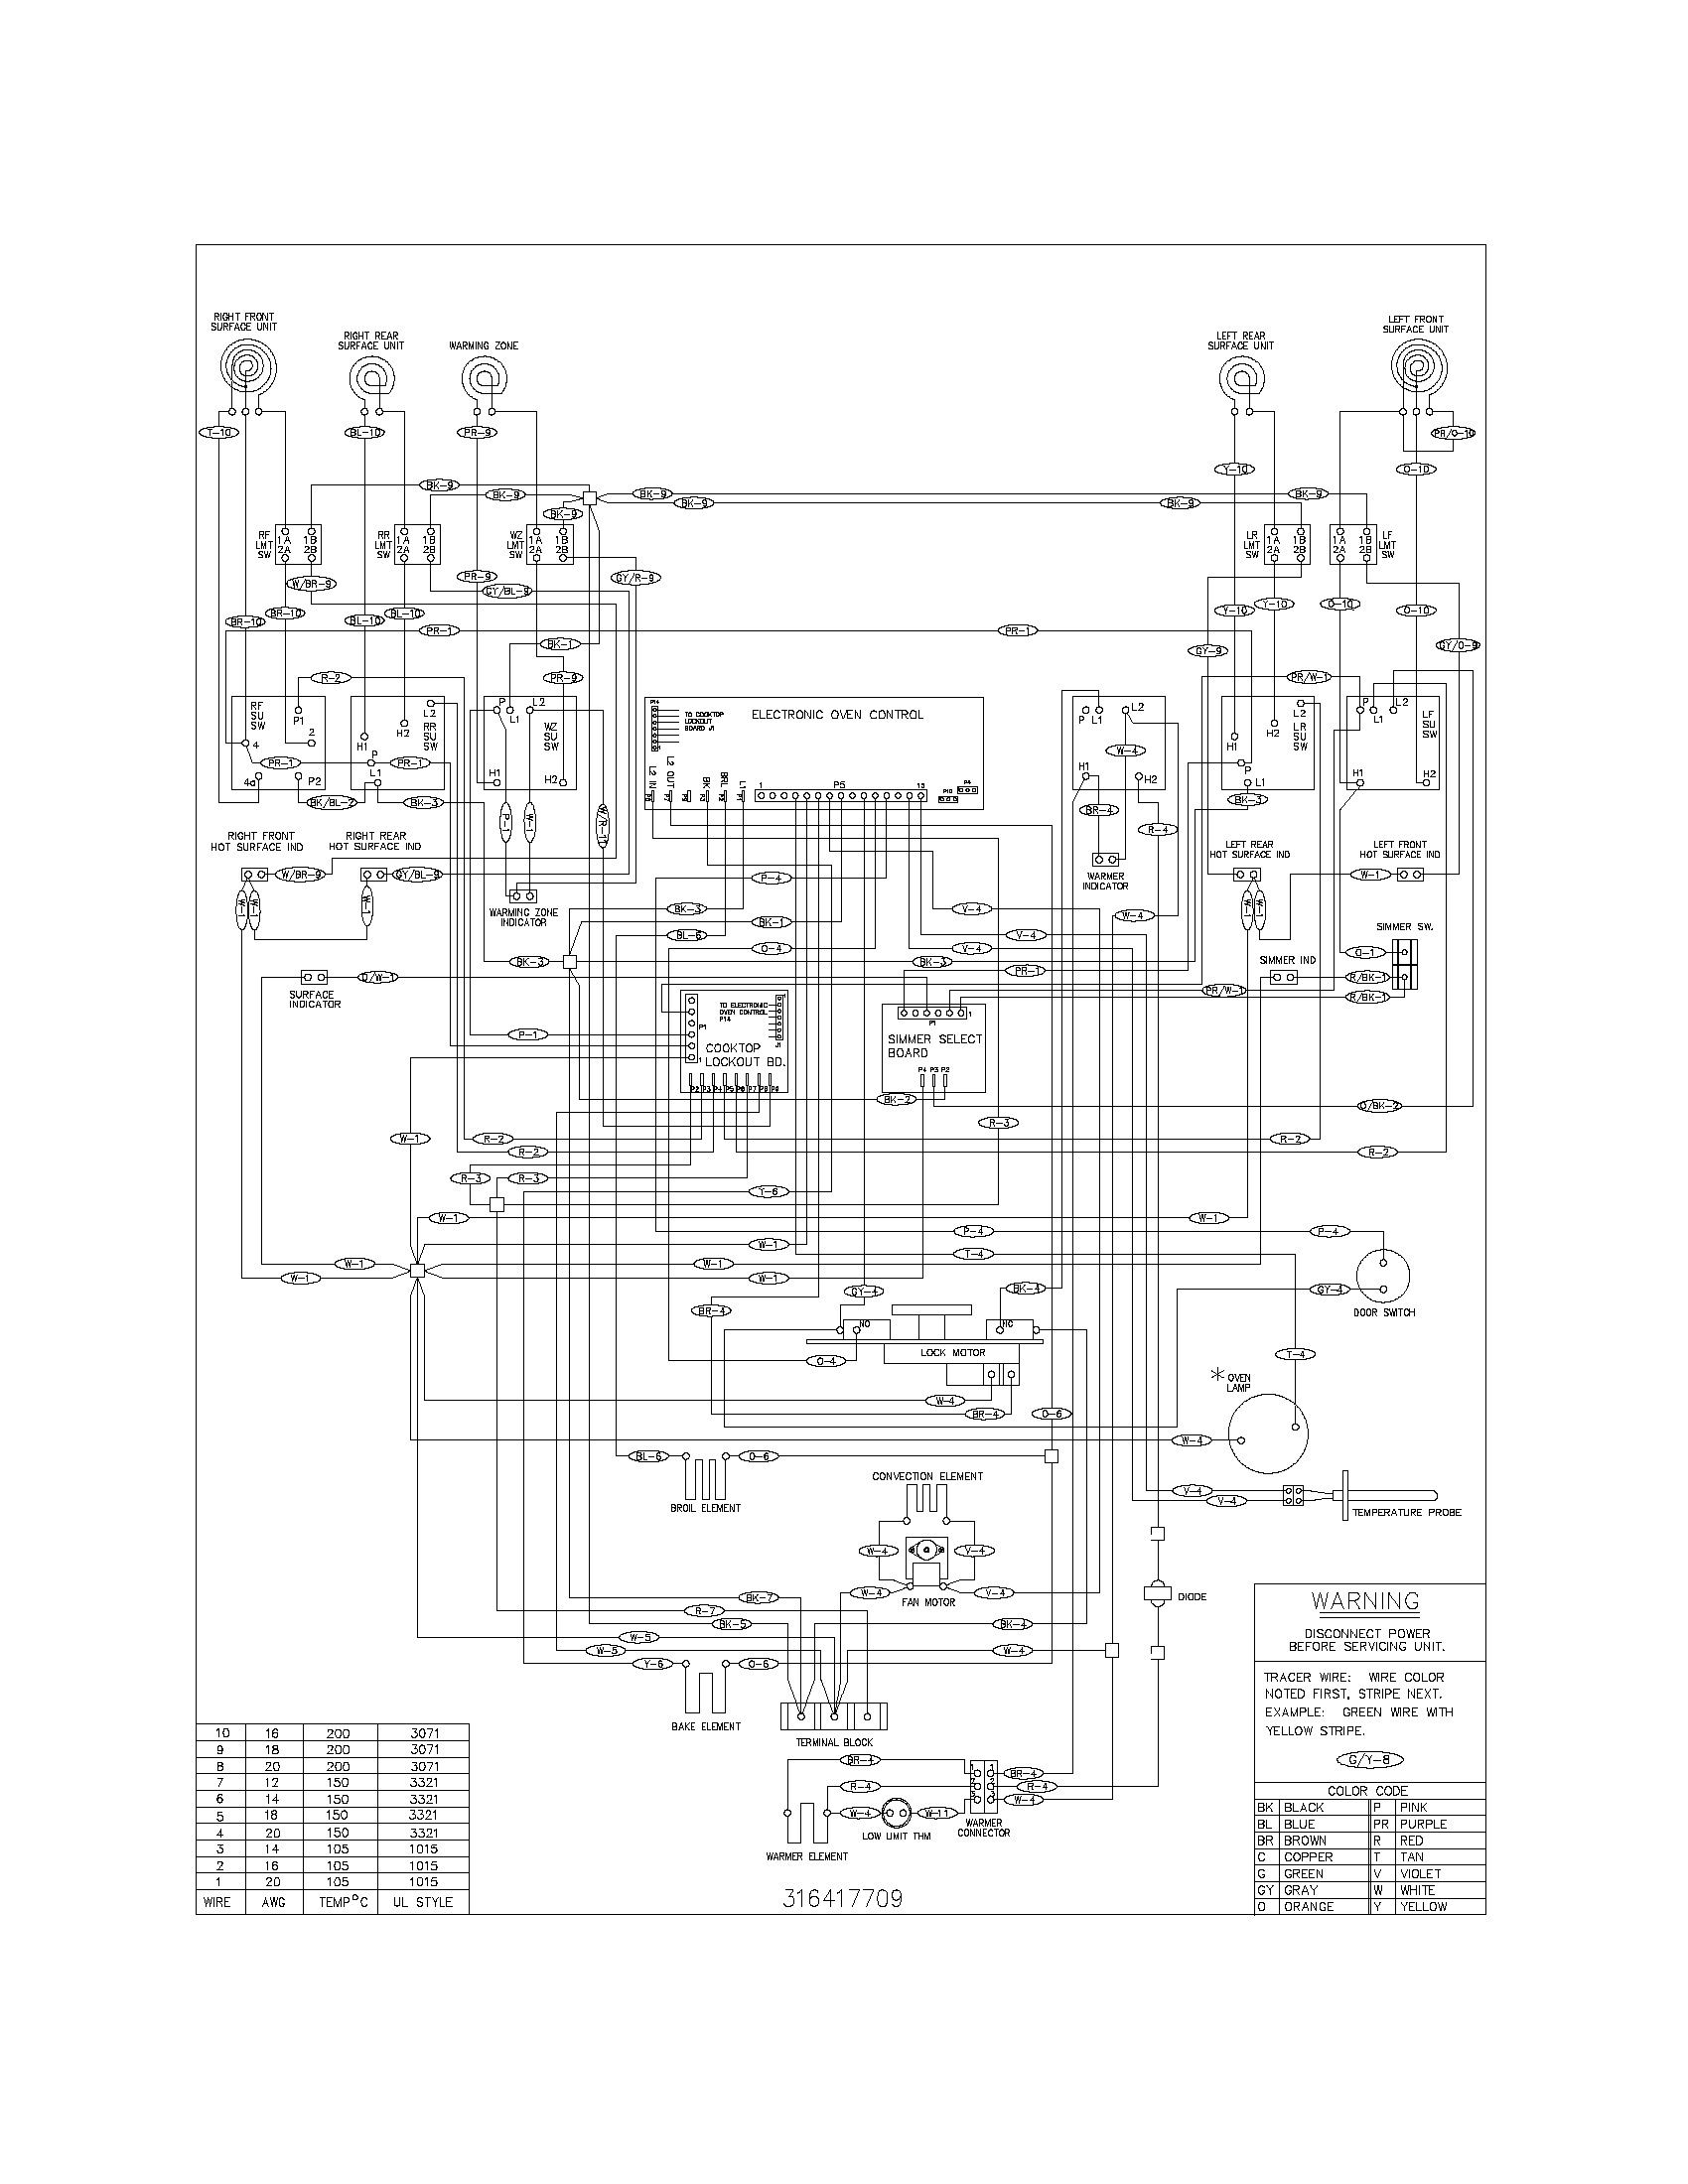 Hotpoint Tumble Dryer Wiring Diagram Roper Electric Dryer Diagram – White Knight Tumble Dryer Wiring Diagram